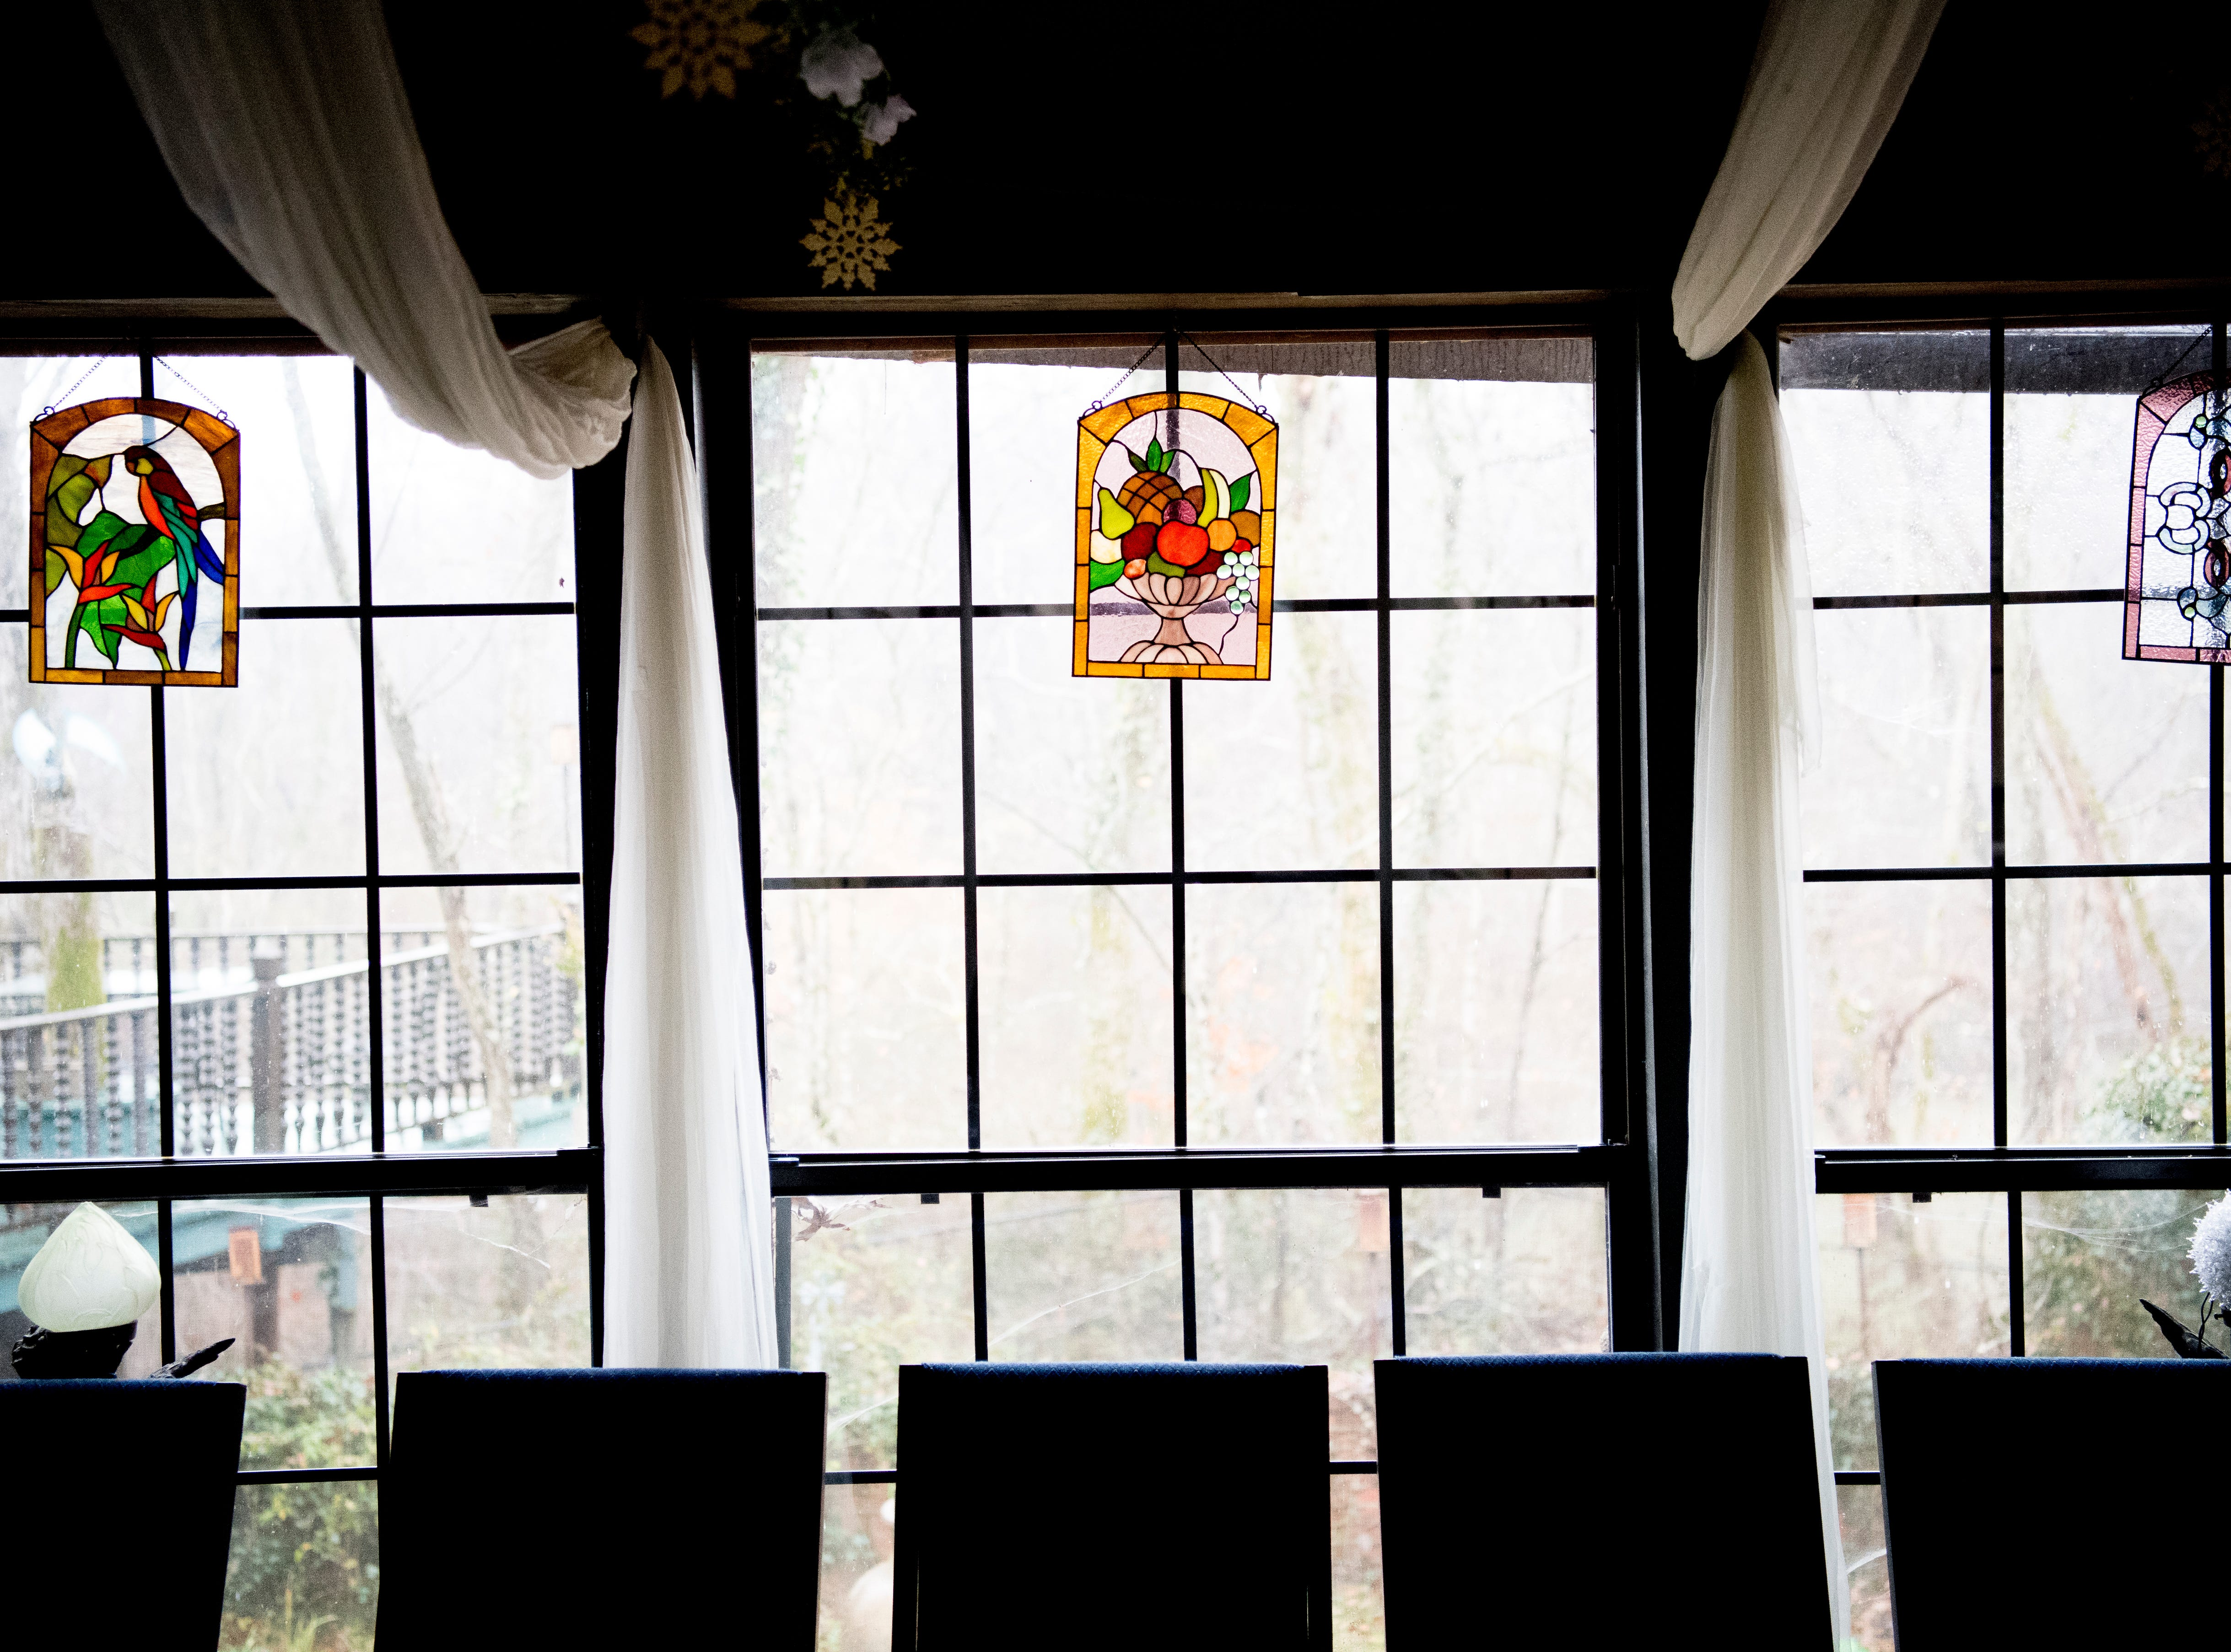 Stained glass decorations in the solarium inside Williamswood Castle in South Knoxville, Tennessee on Thursday, January 17, 2019. The home, modeled after a Scottish castle, was built by Julia Tucker in 1991 and took 6 years to complete. Many of the items in the home were sourced from around the Knoxville area.